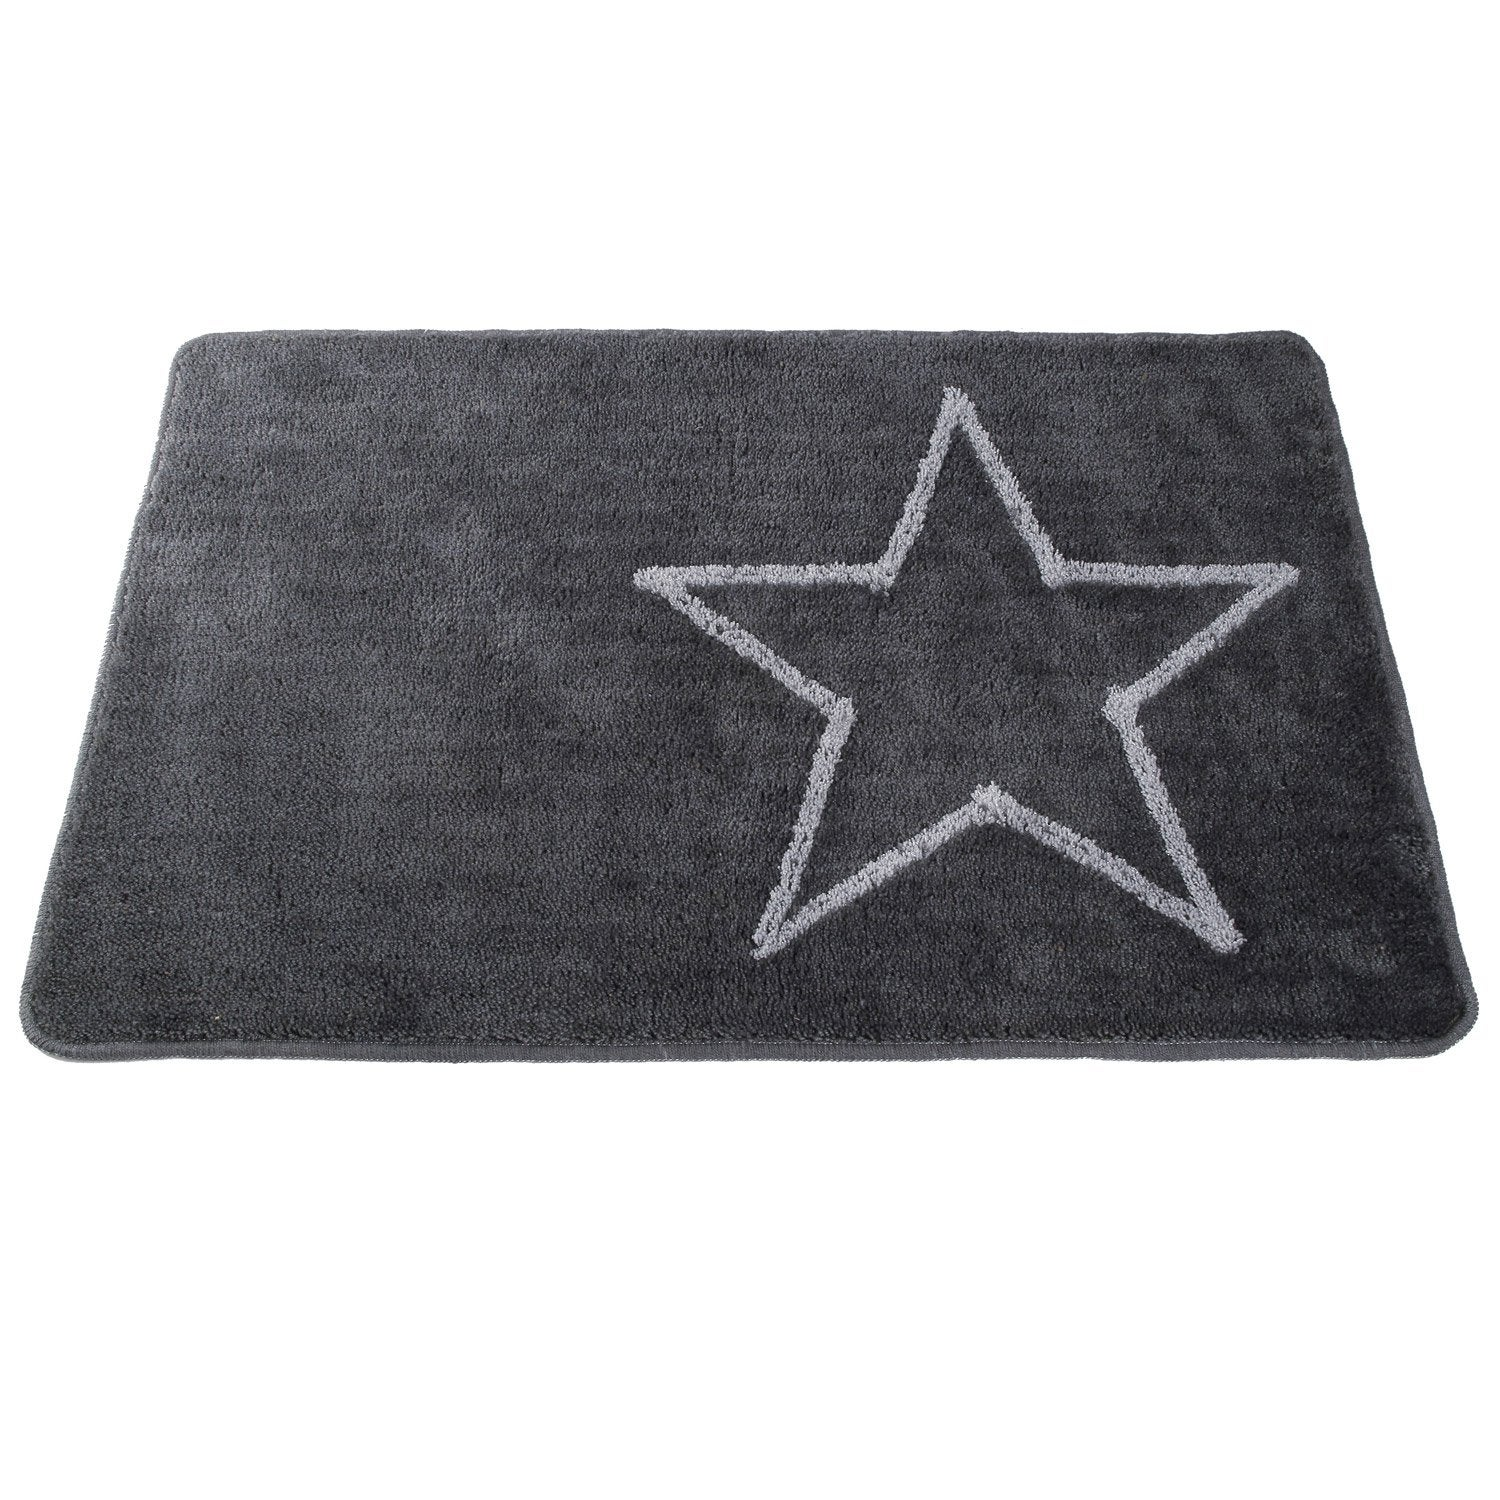 tapis de bains wake up star 85 x 55 cm leroy merlin. Black Bedroom Furniture Sets. Home Design Ideas